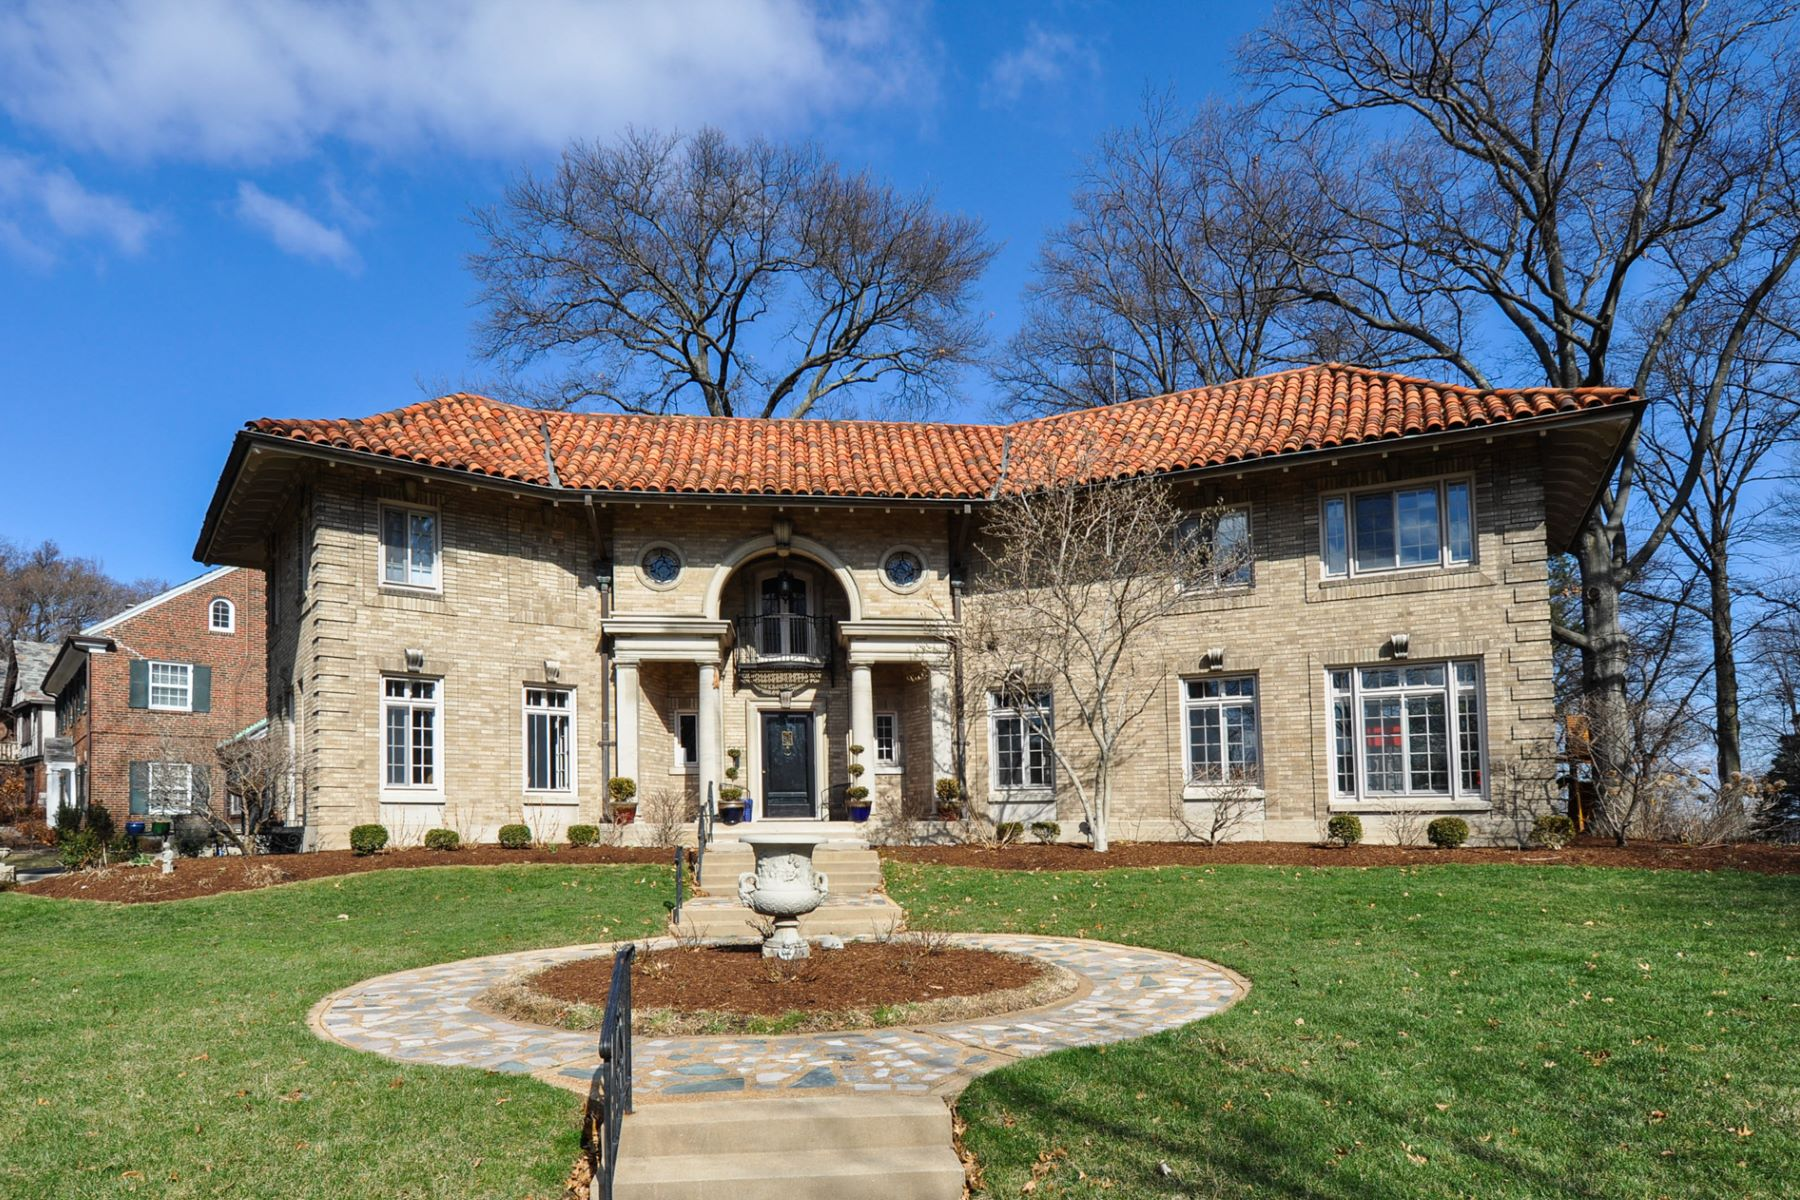 Single Family Home for Sale at Italian Renaissance masterpiece 7201 Greenway Avenue University City, Missouri 63130 United States